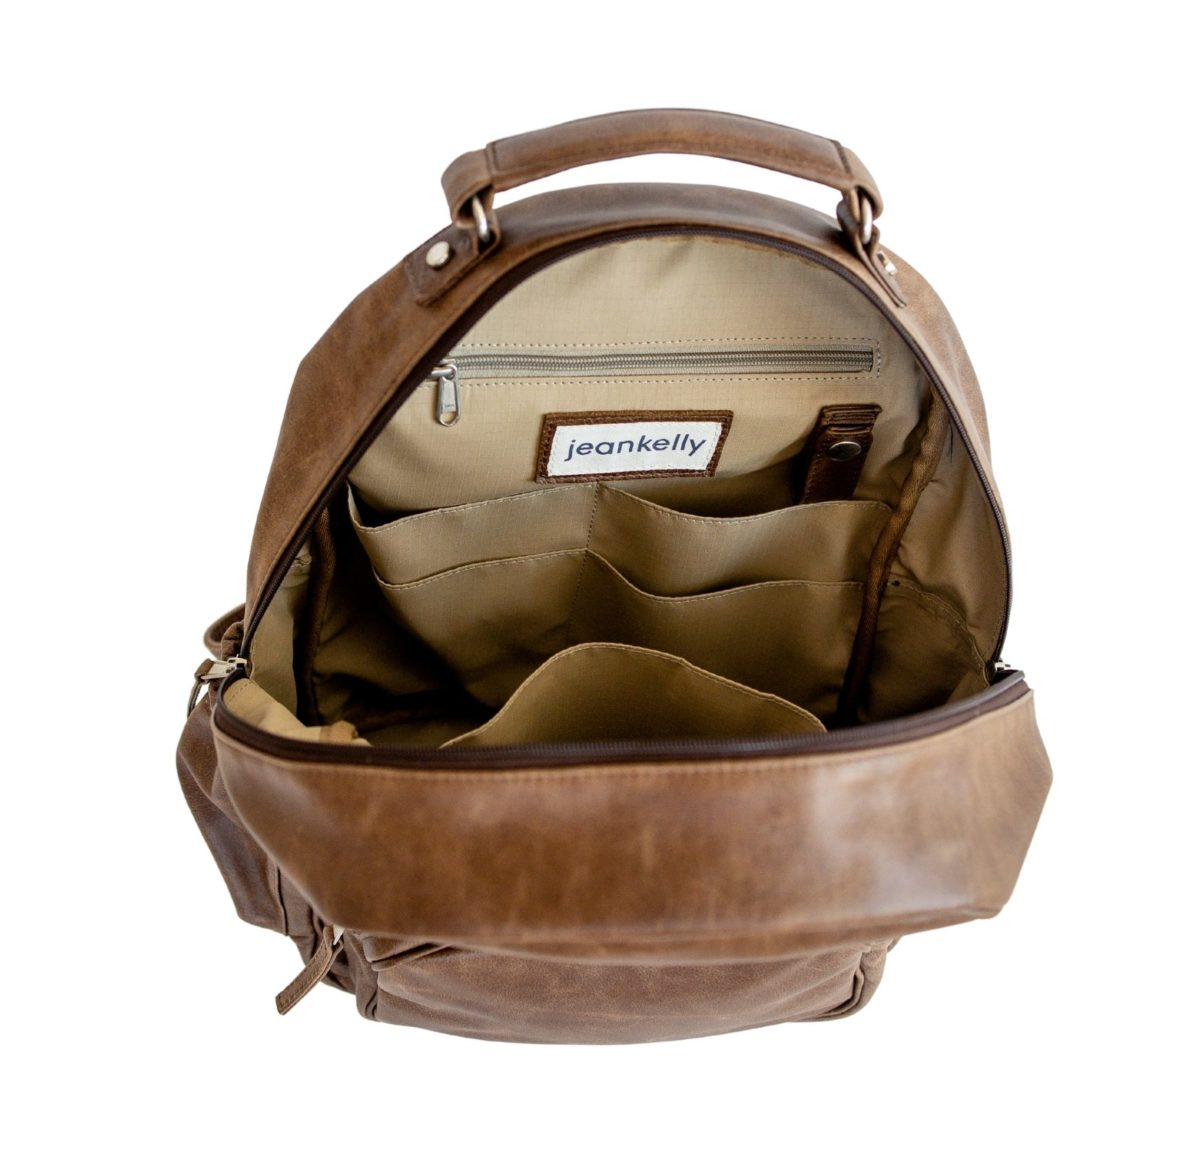 jeankelly coffee leather original backpack inside empty